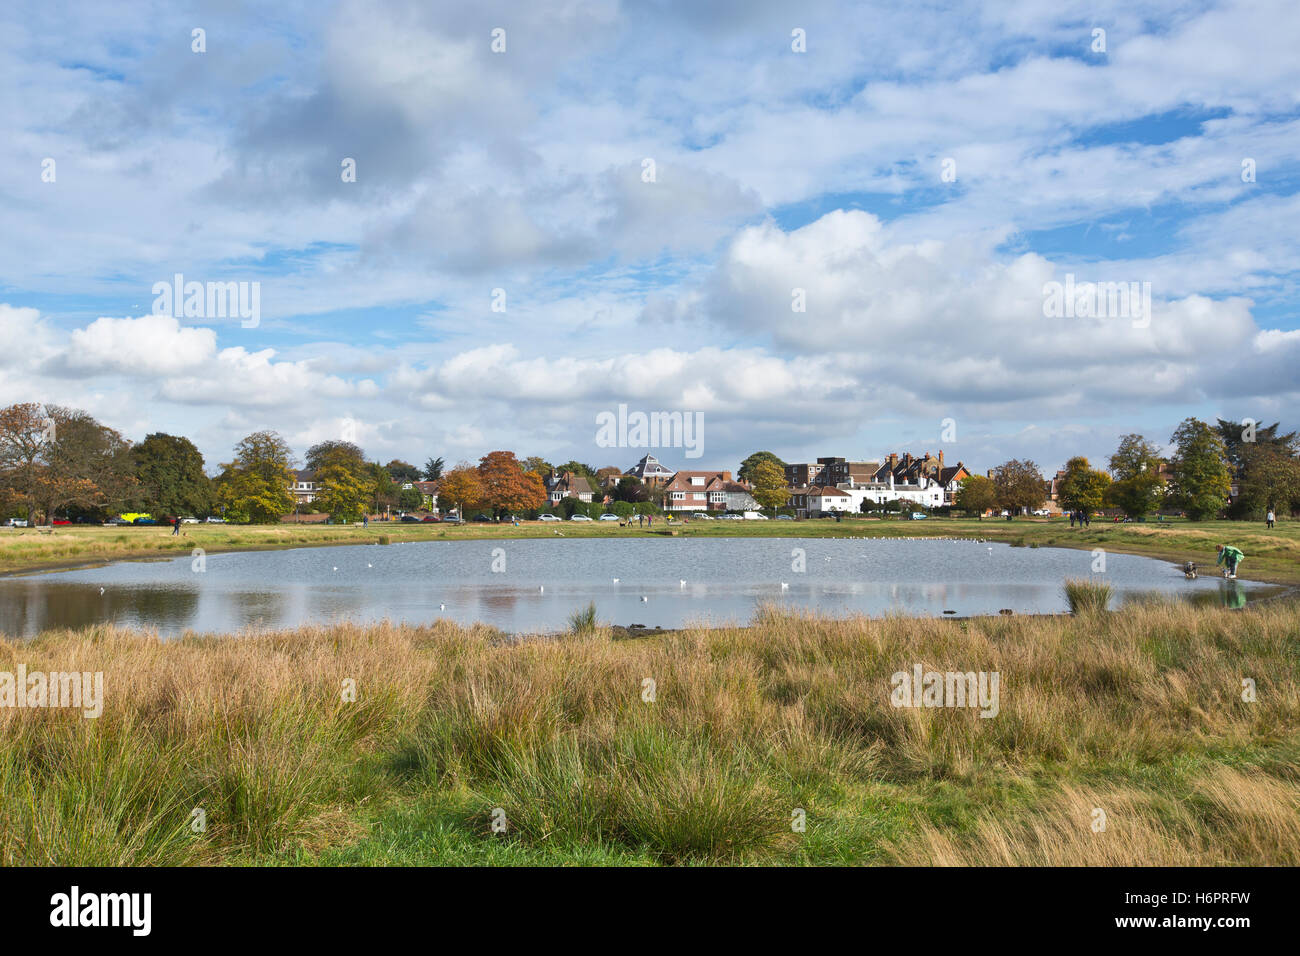 6f331fd6b12aa Rushmere Pond, Wimbledon Common, Southwest London, England, UK - Stock Image